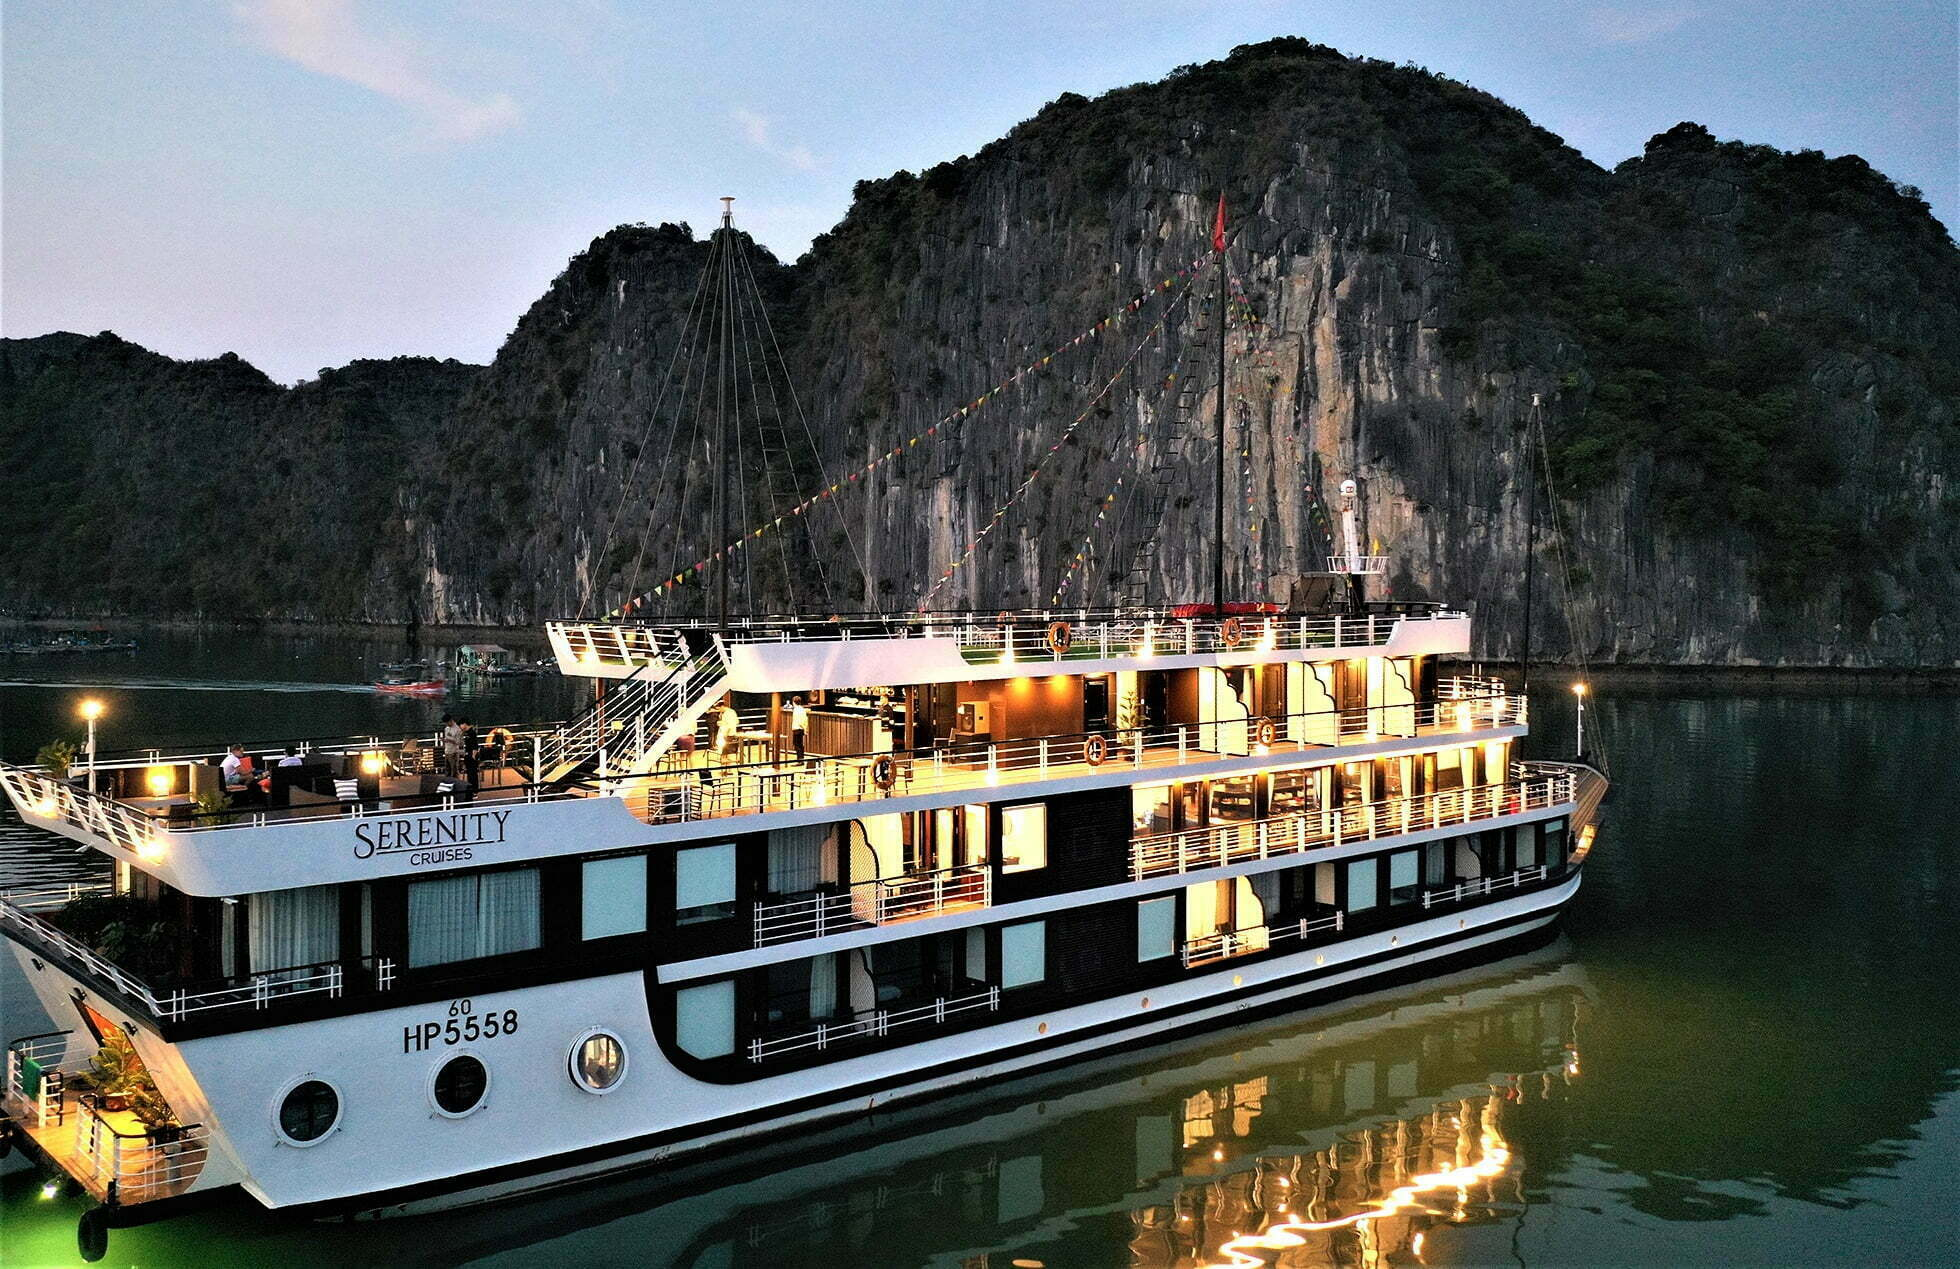 Lan Ha Bay 2 day 1 night | Halong Bay 2 day 1 night Serenity Cruises